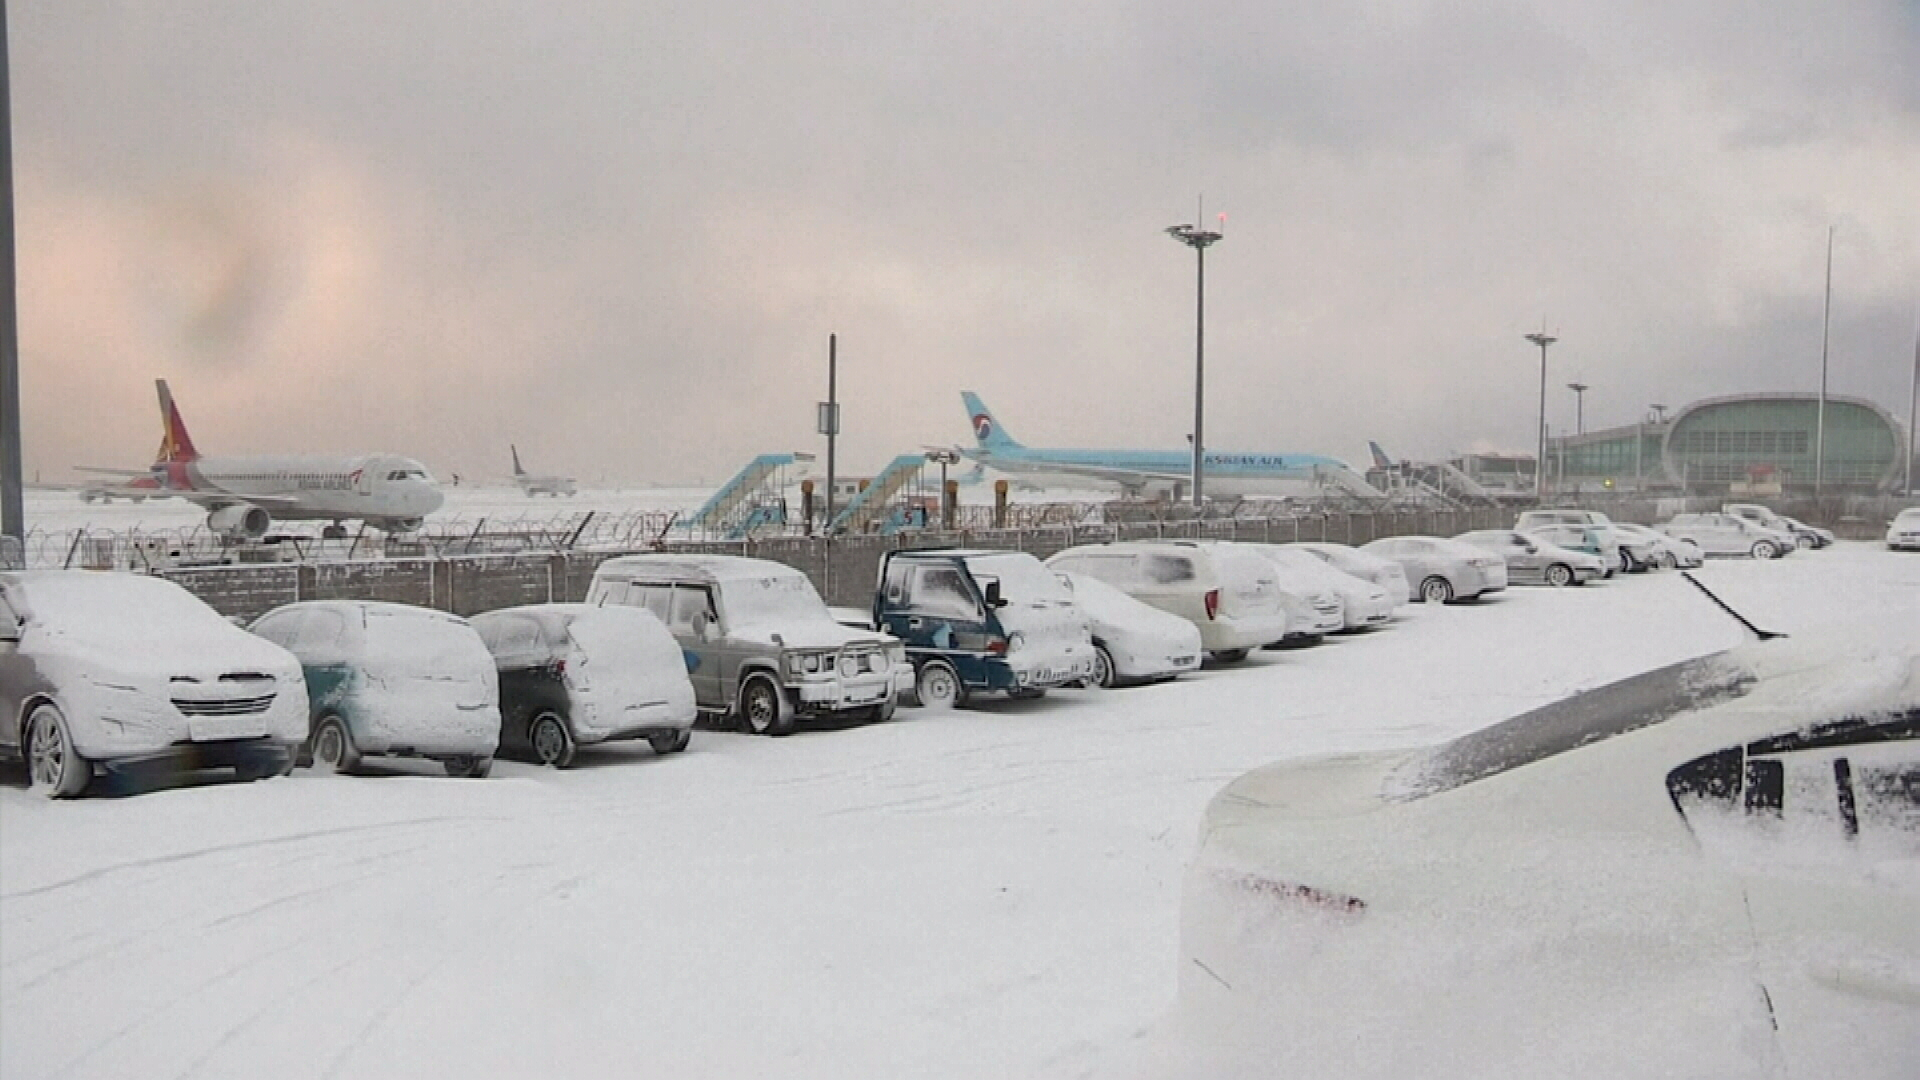 Heavy snow and cold temperatures closed the airport on the Korean island of Jeju